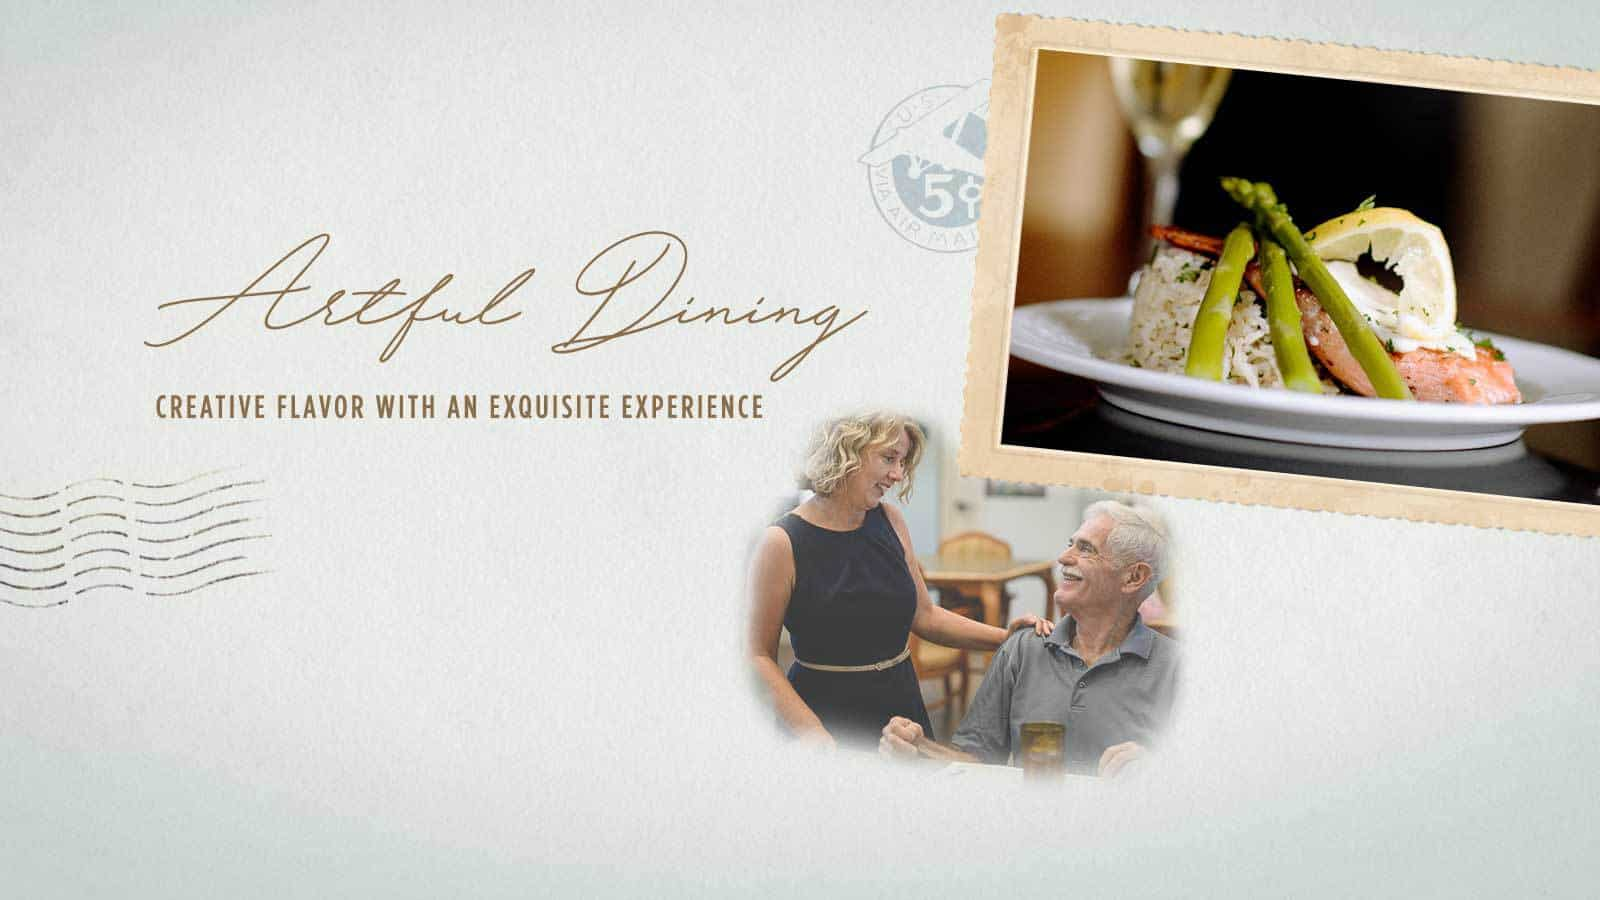 Artful Dining: Create Flavor with an Exquisite Senior Living Dining Experience